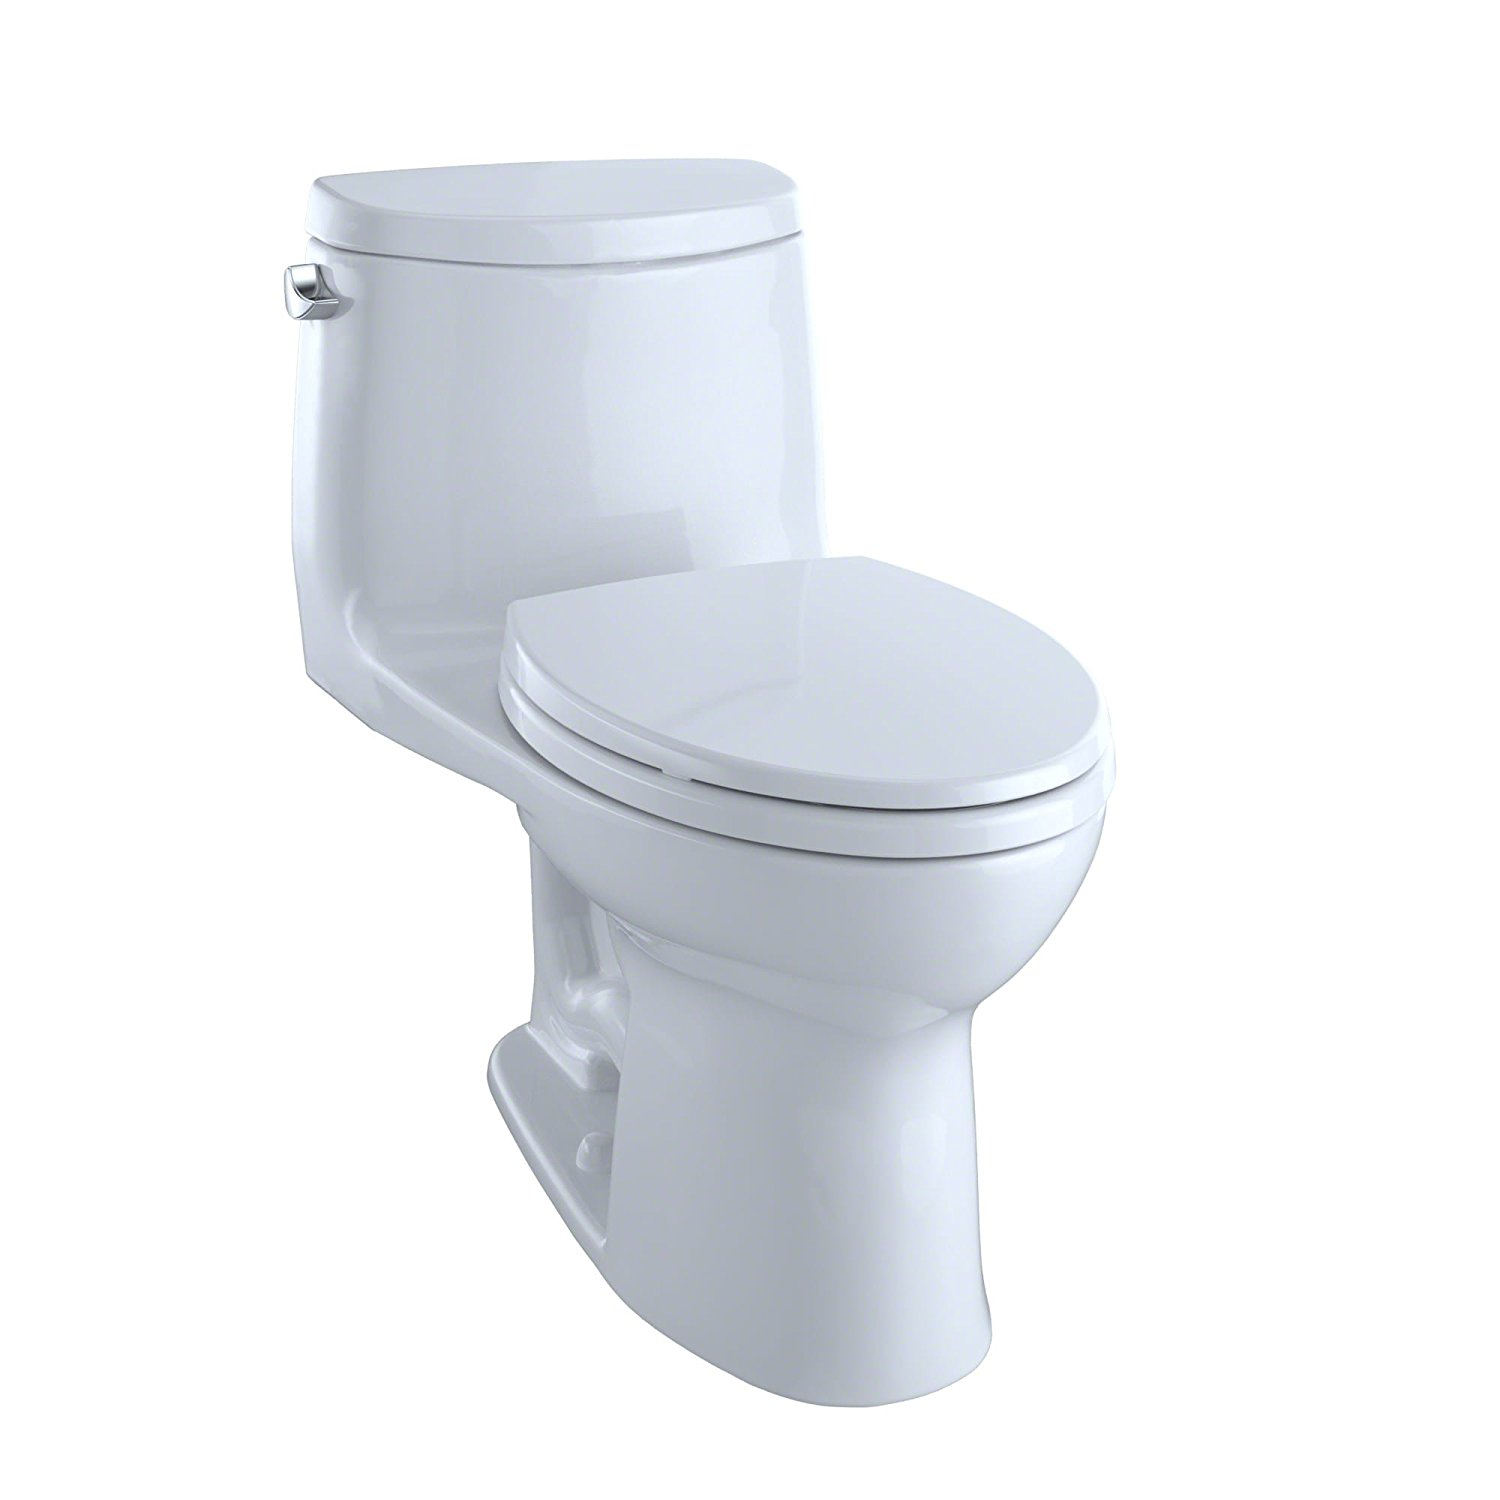 How to Buy the Right Size Toilet Seat